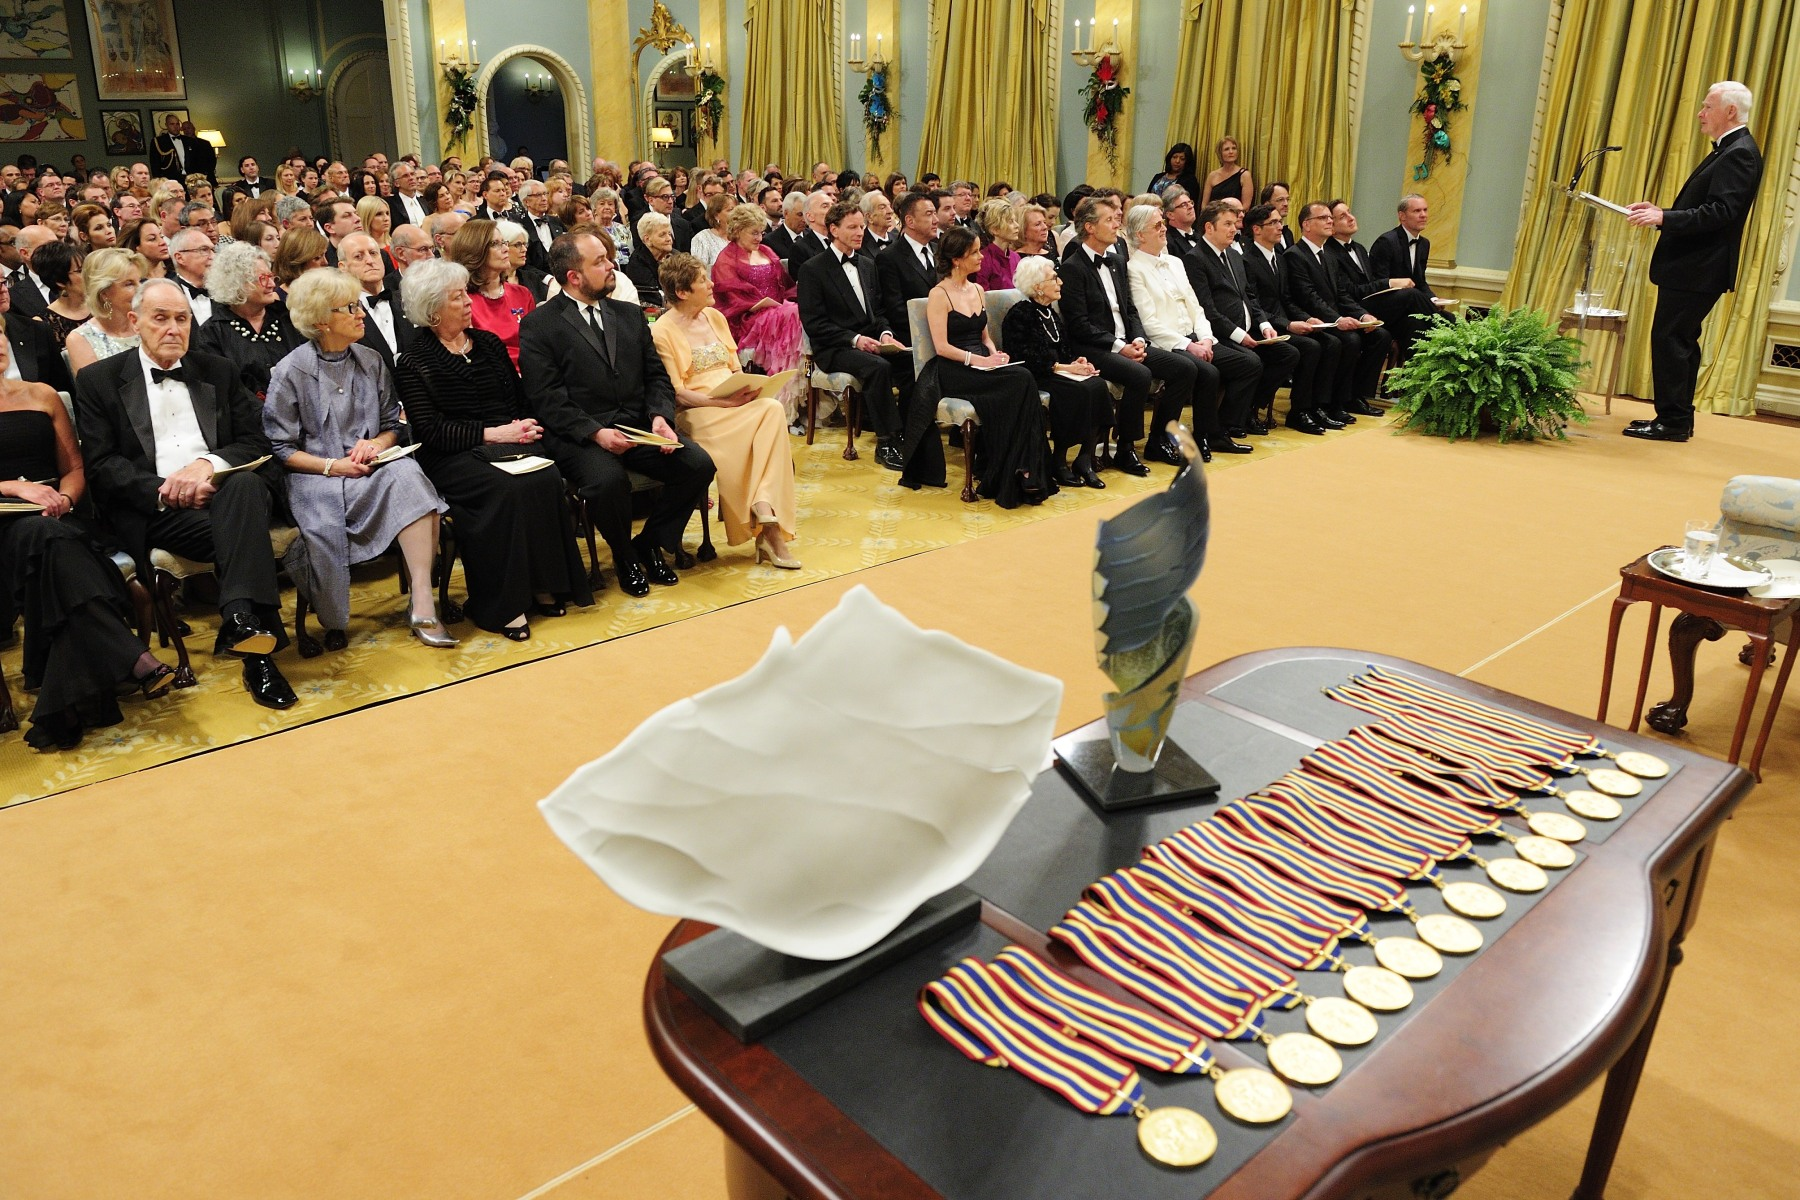 Each year, the medals are presented to the laureates by the Governor General at Rideau Hall. The following evening, Their Excellencies and all recipients attend a Gala in their honour at the National Art Centre.